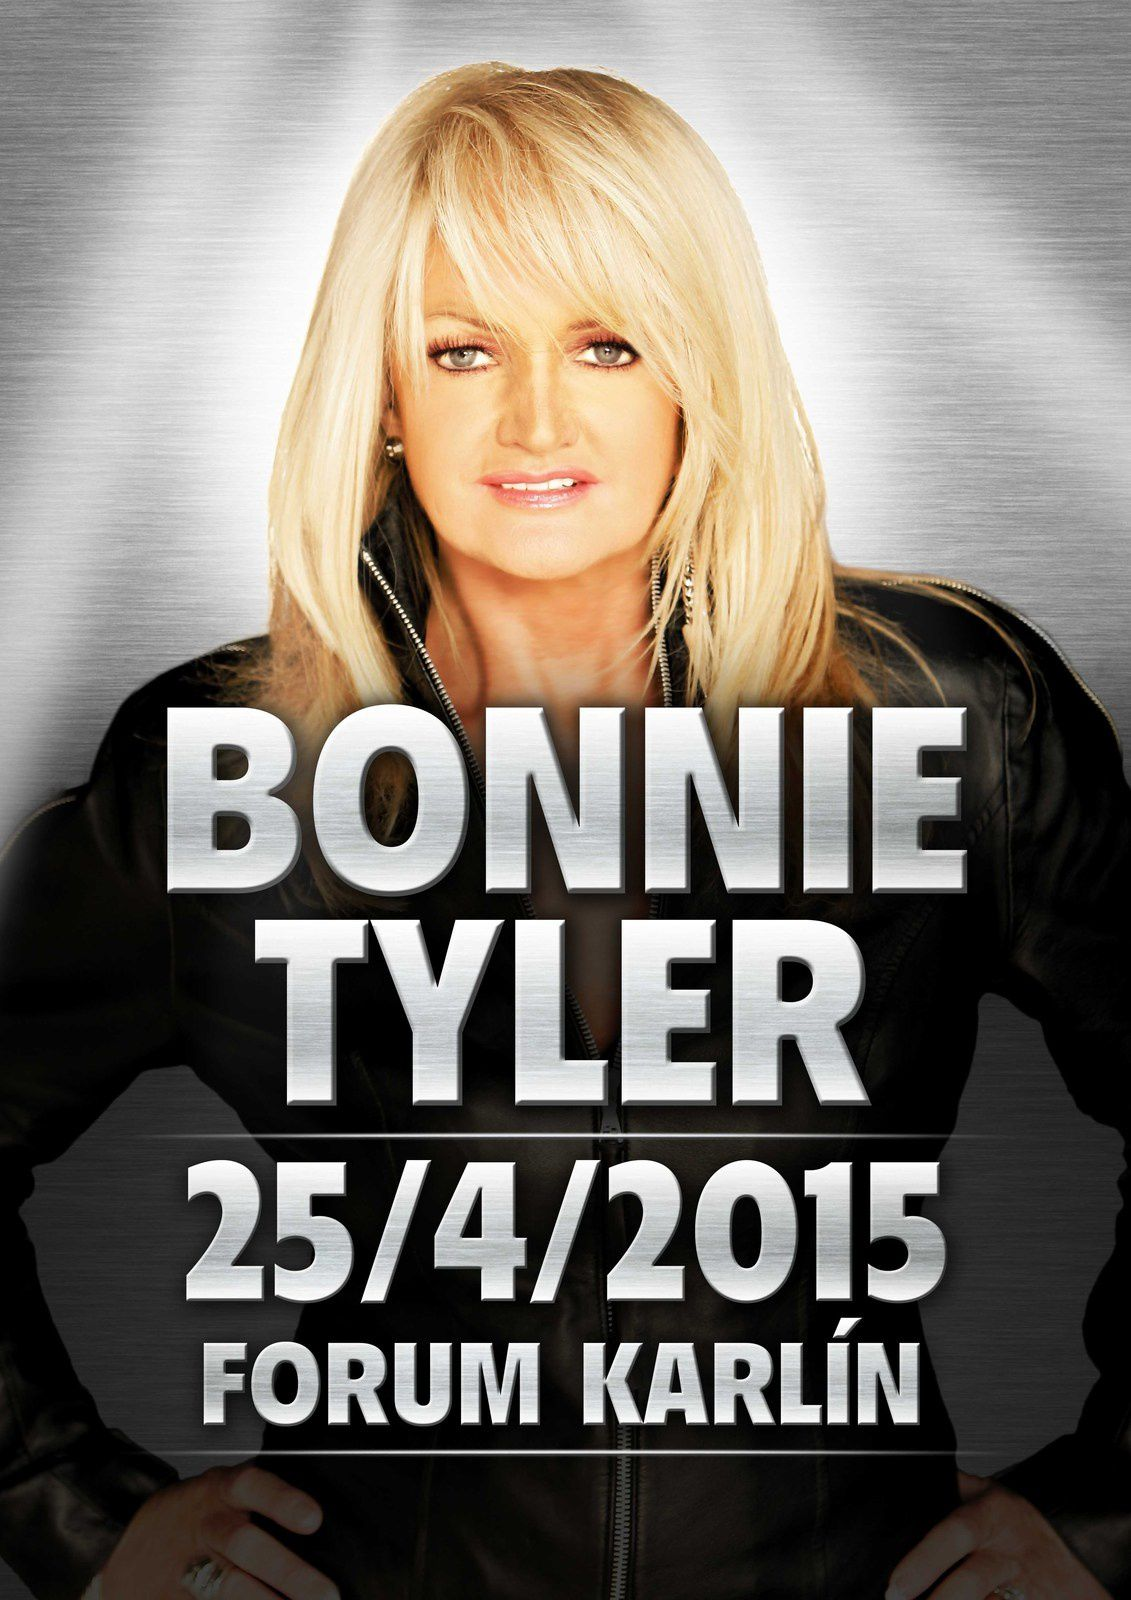 Bonnie Tyler - Live Dates / Concerts 2015 [updated]